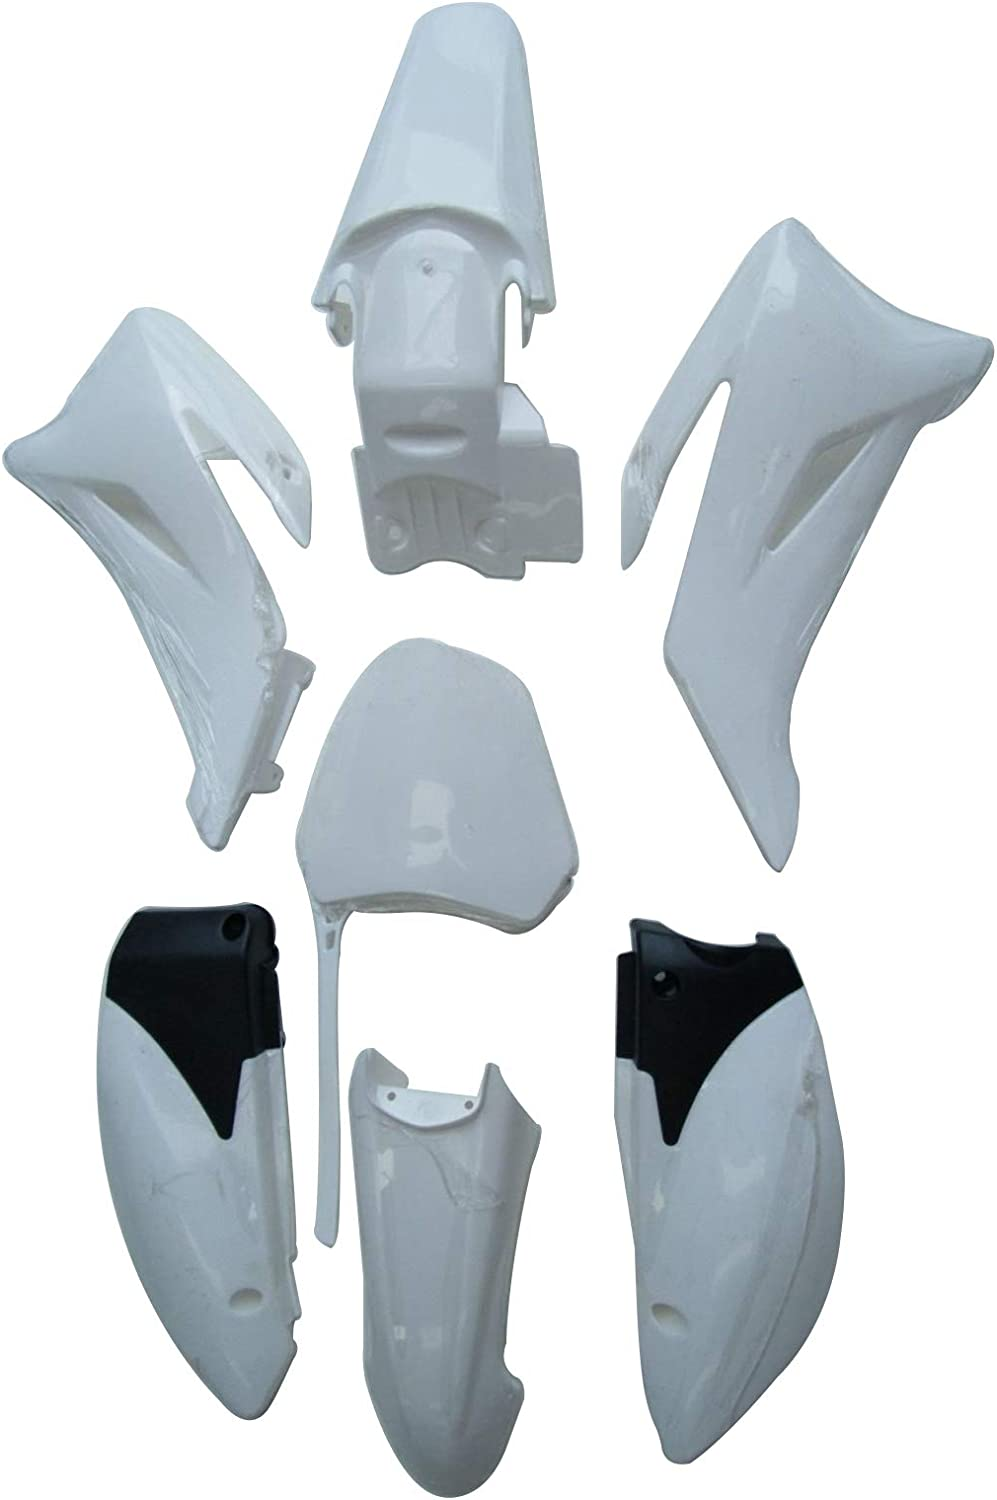 White TDPRO Plastic Fender Fairing Kit for Yamaha TTR110 Pit Dirt Bike